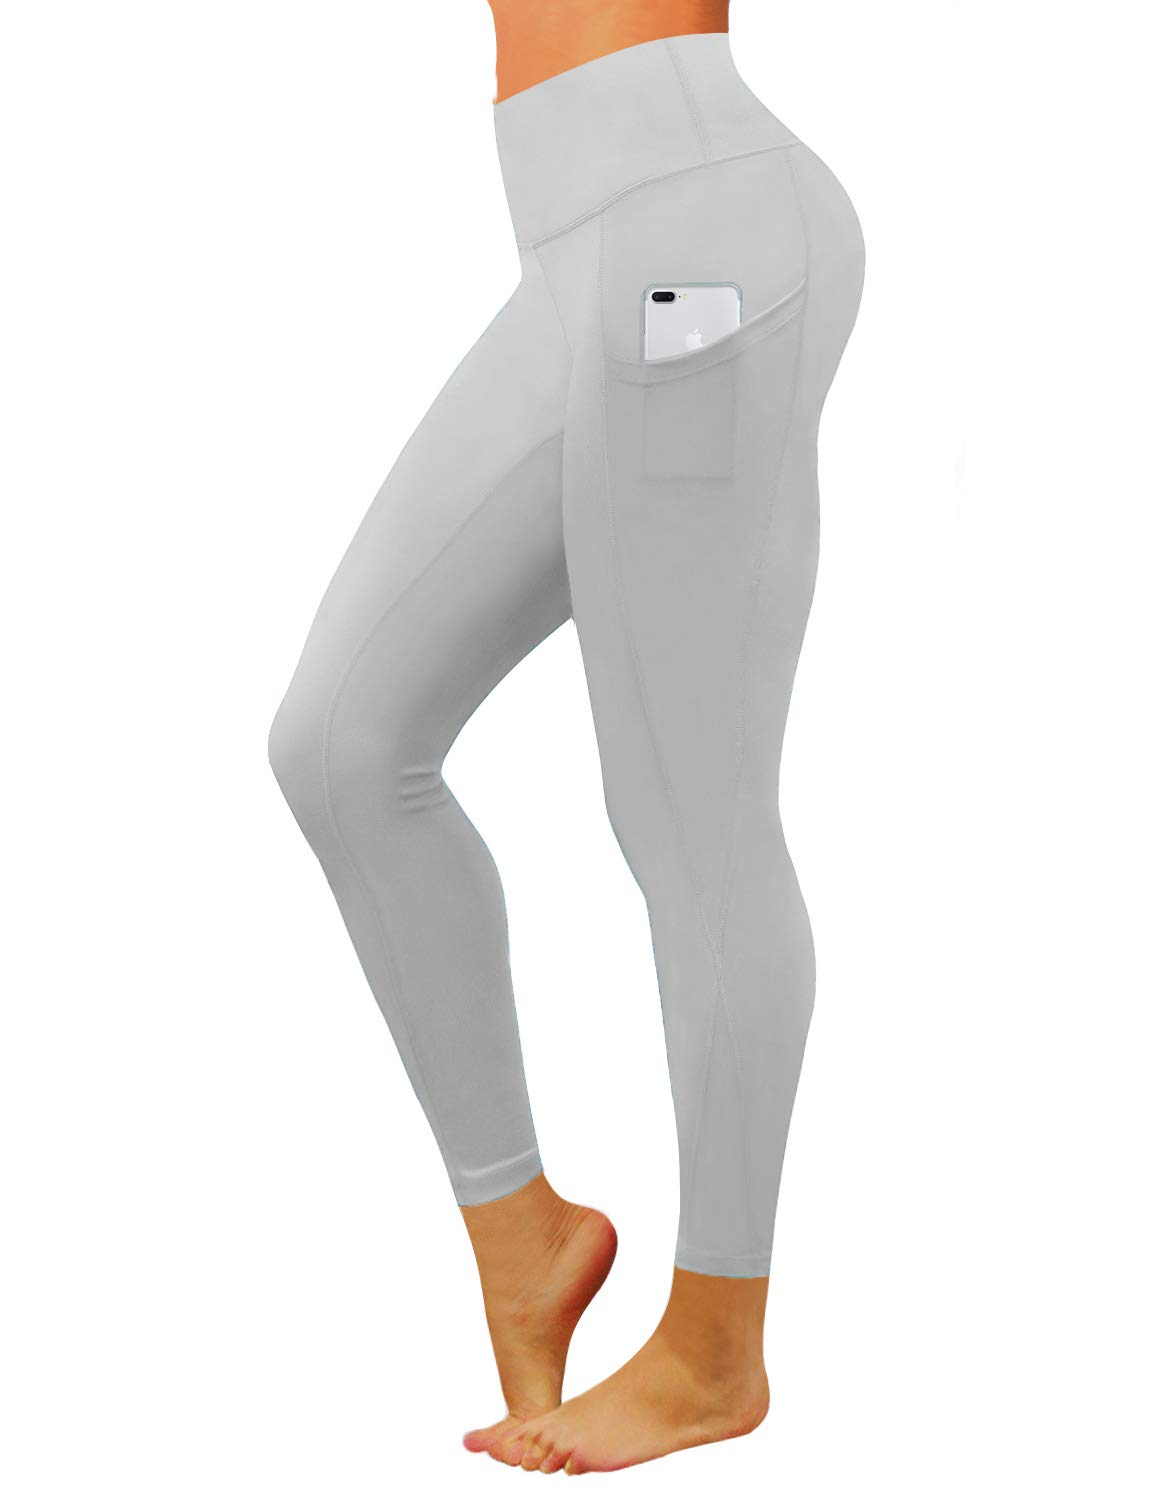 BUBBLELIME High Compression Yoga Pants Out Pocket Running Pants High Waist Moisture Wicking Workout Leggings, Bwwb010 Lightgray, X-Small